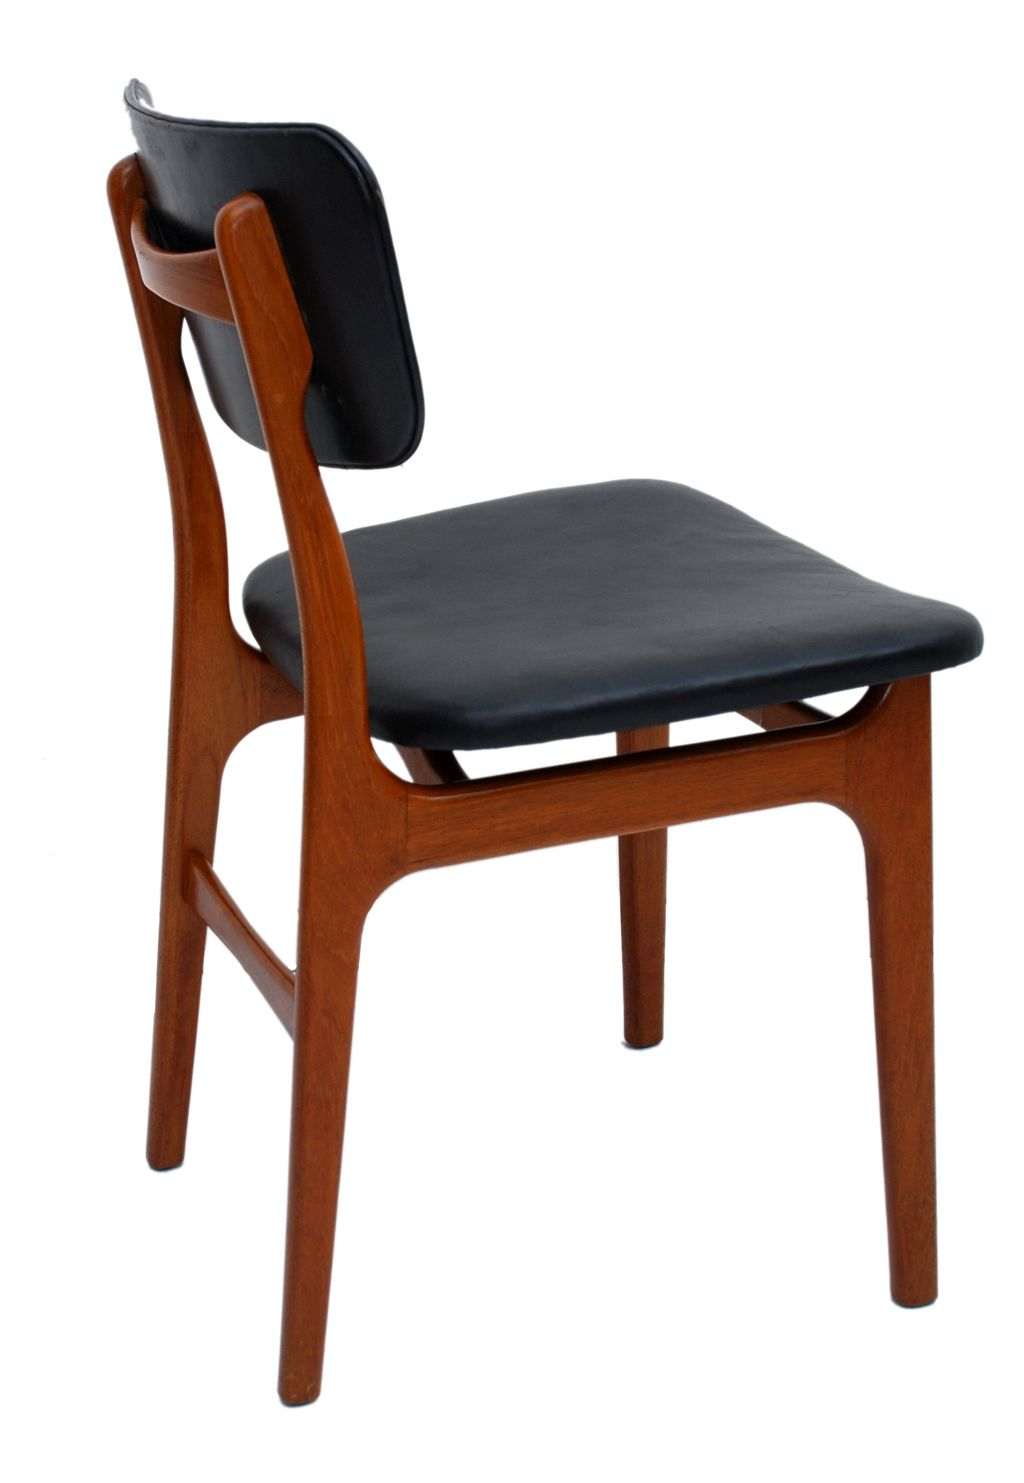 Excellent Exclusive Danish Modern Teak And Black Leather Dining Chair Squirreltailoven Fun Painted Chair Ideas Images Squirreltailovenorg